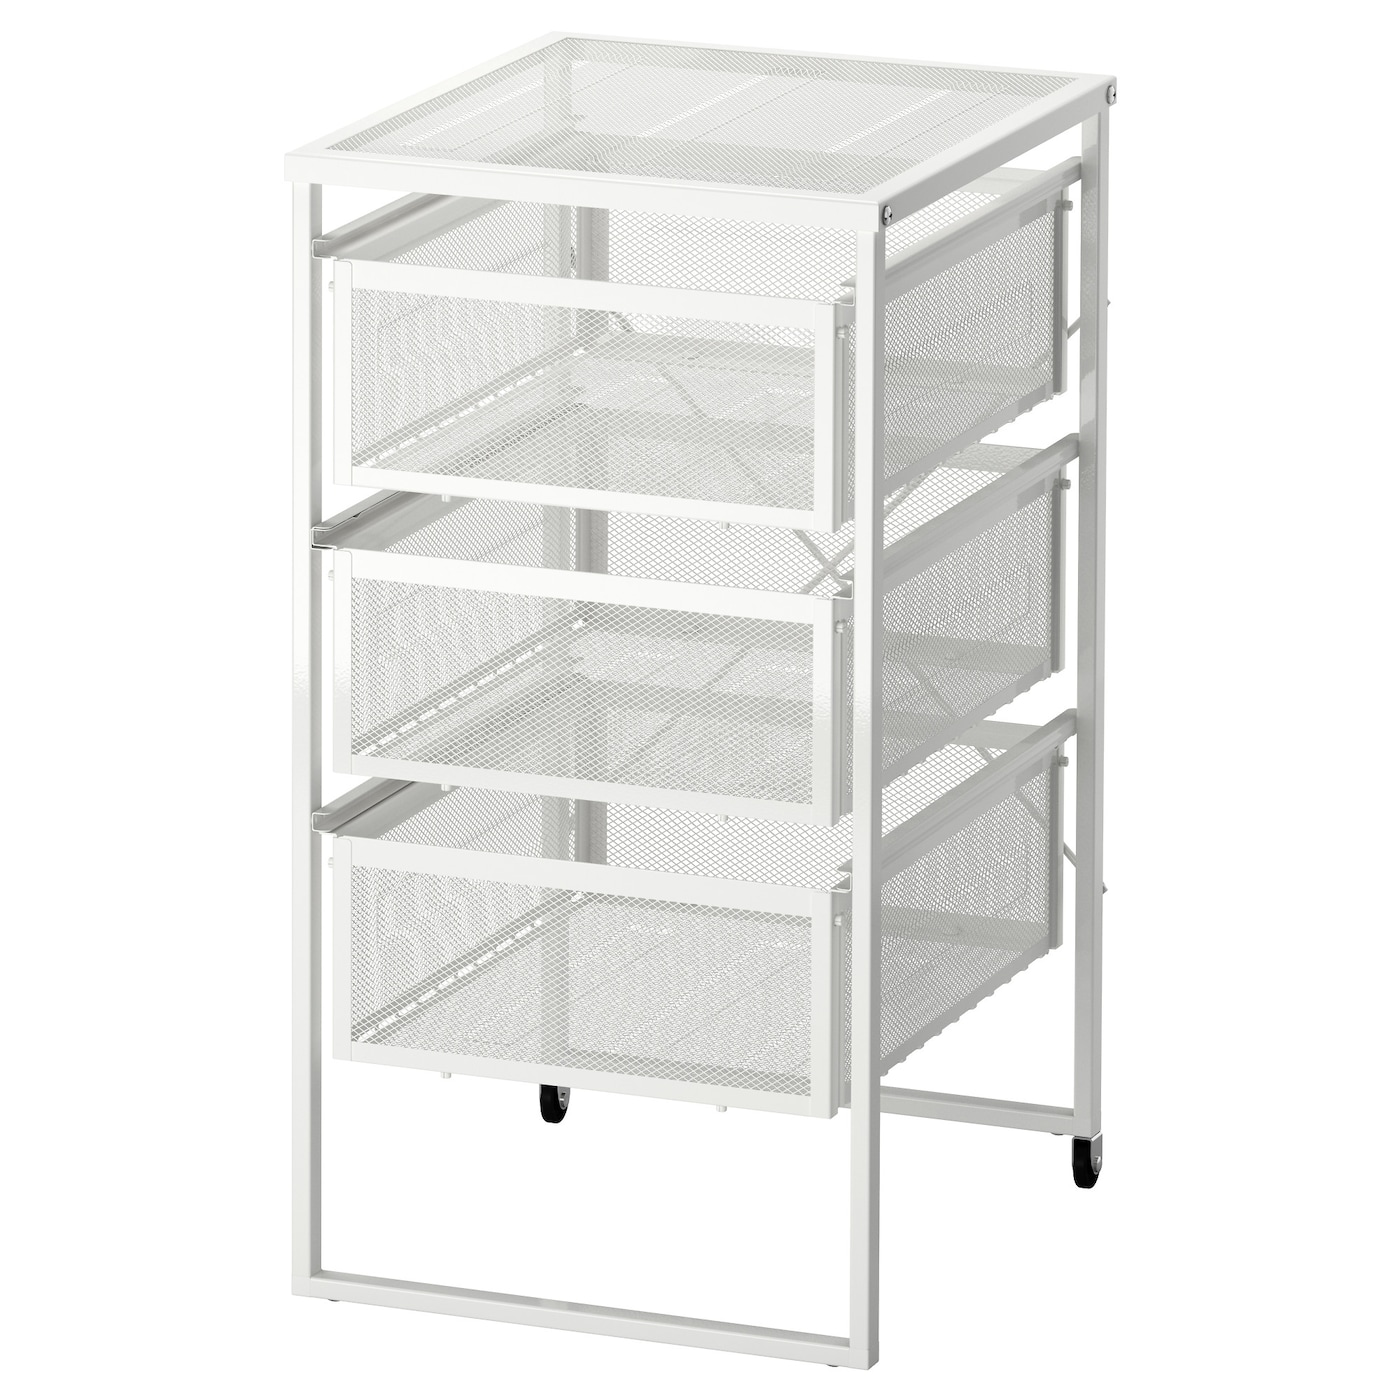 IKEA LENNART drawer unit Easy to move where it is needed thanks to castors.